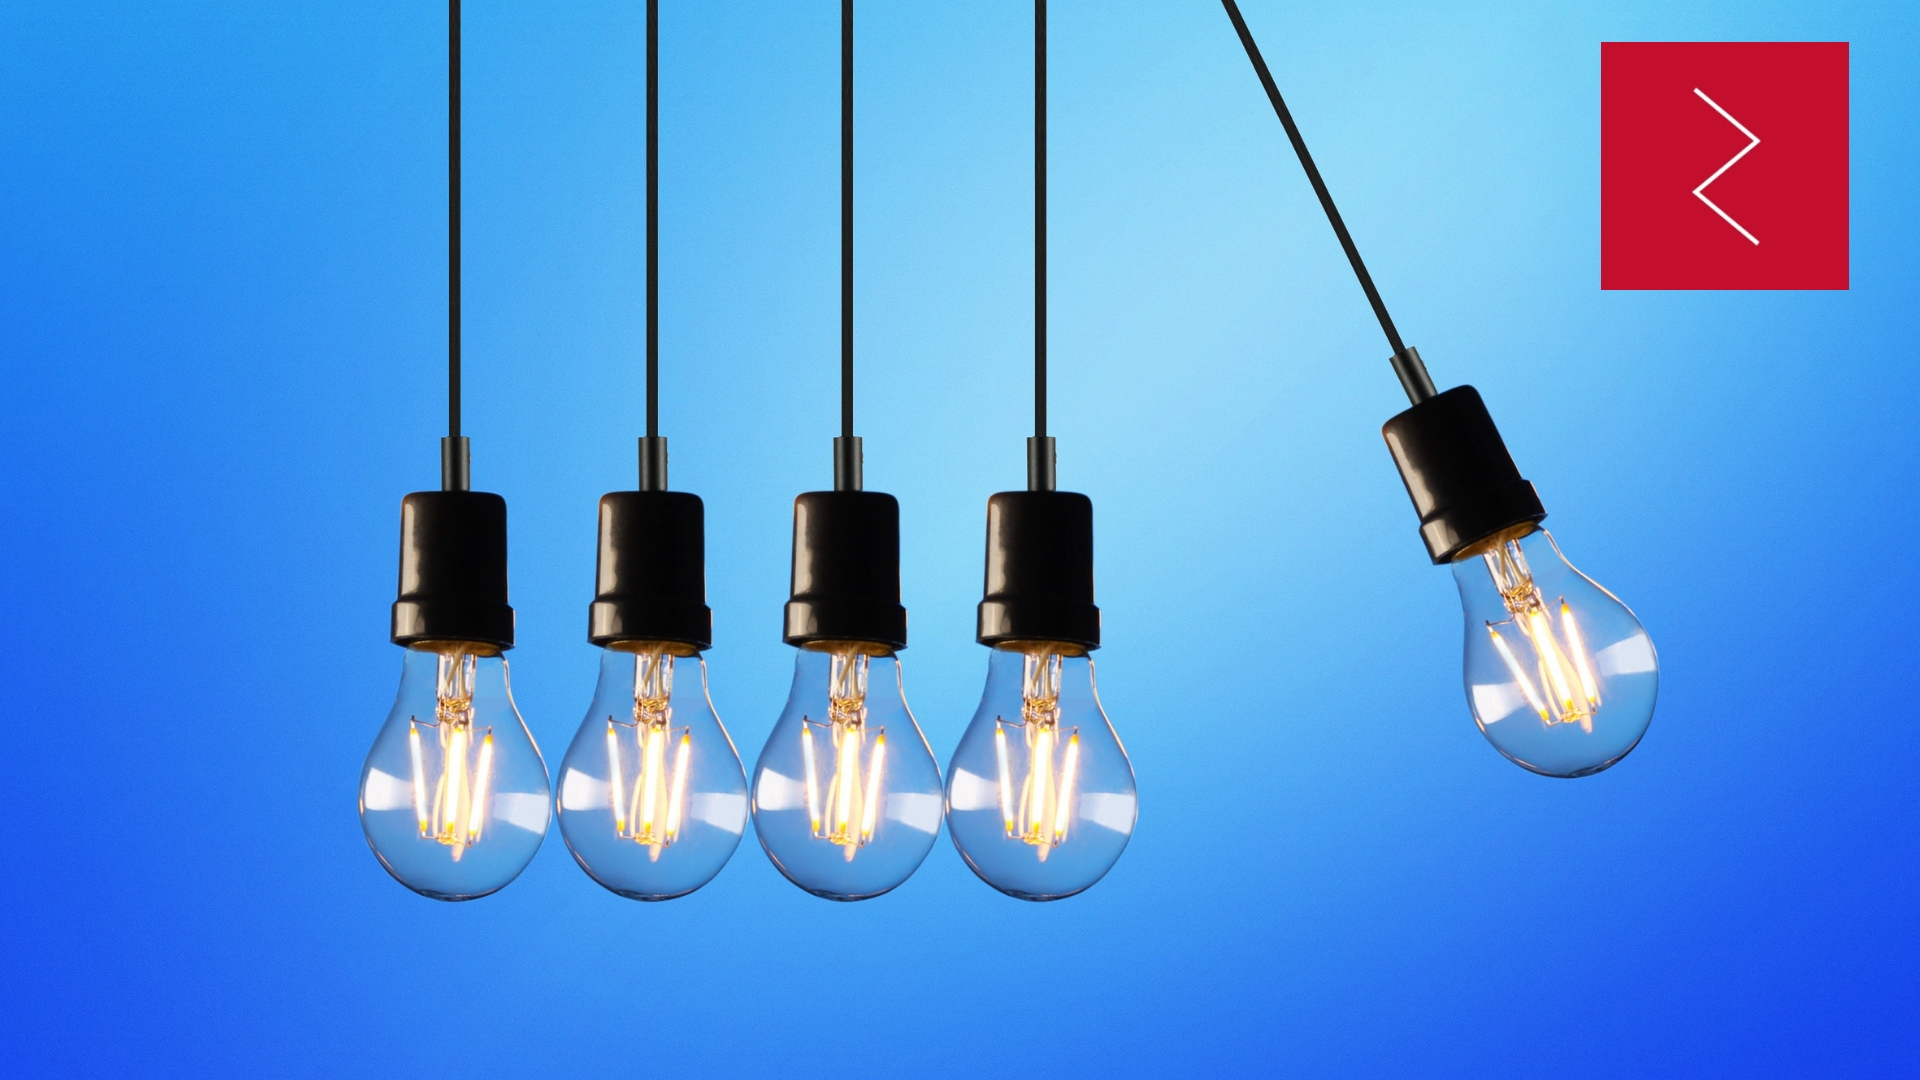 Lightbulbs with blue background